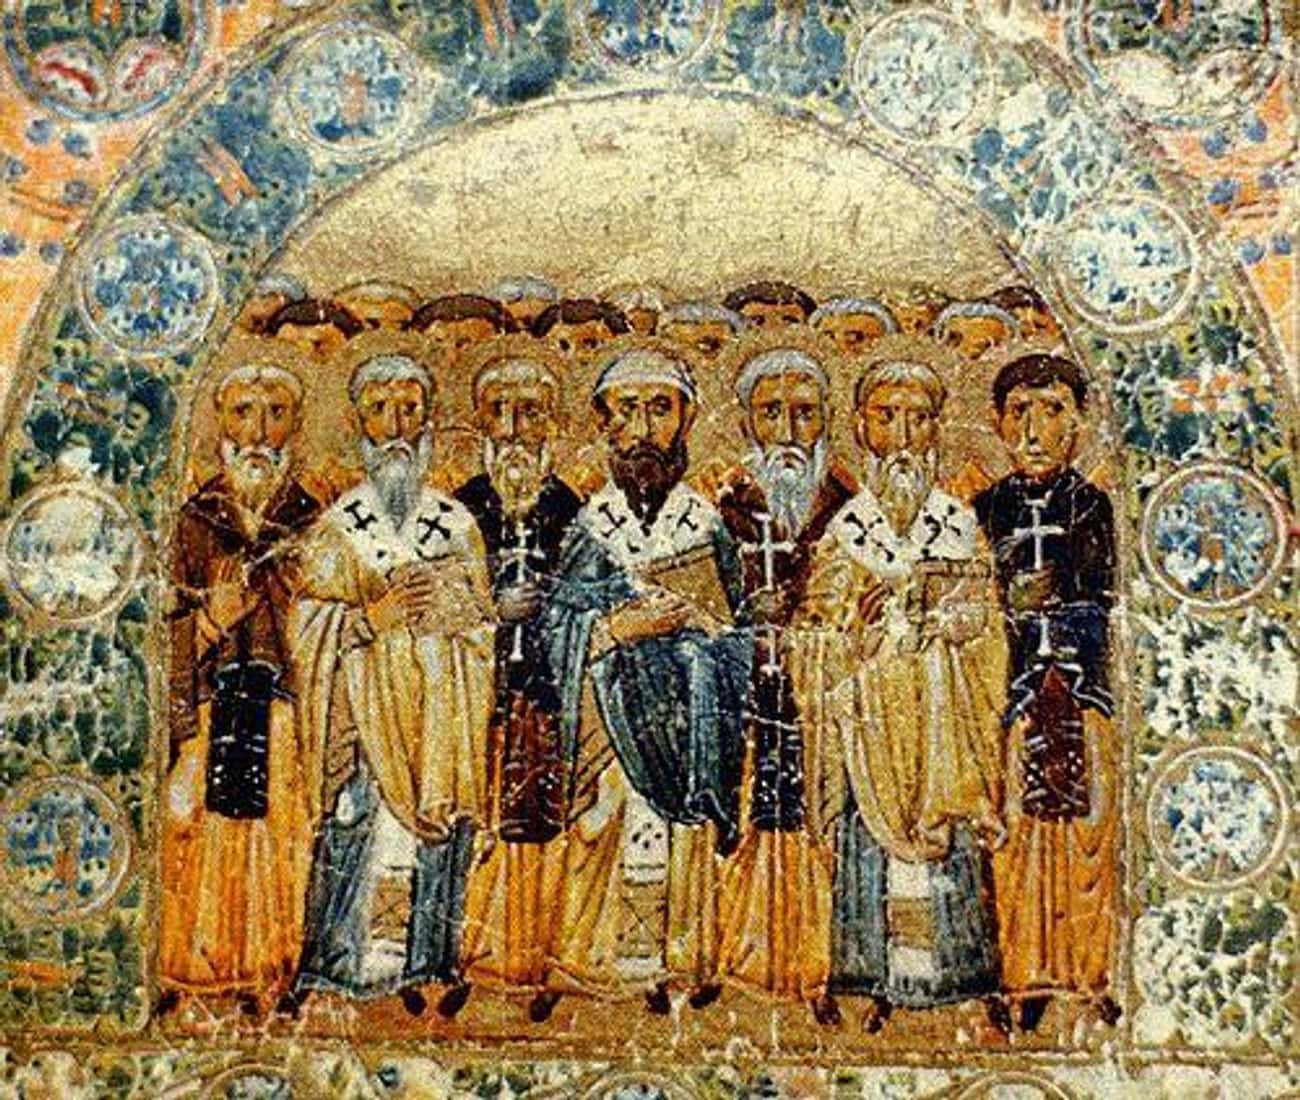 The Early Church Fathers Hated is listed (or ranked) 4 on the list The Gospel Of Thomas Has Some Evidence That One Of Jesus' Disciples Was His Twin Brother